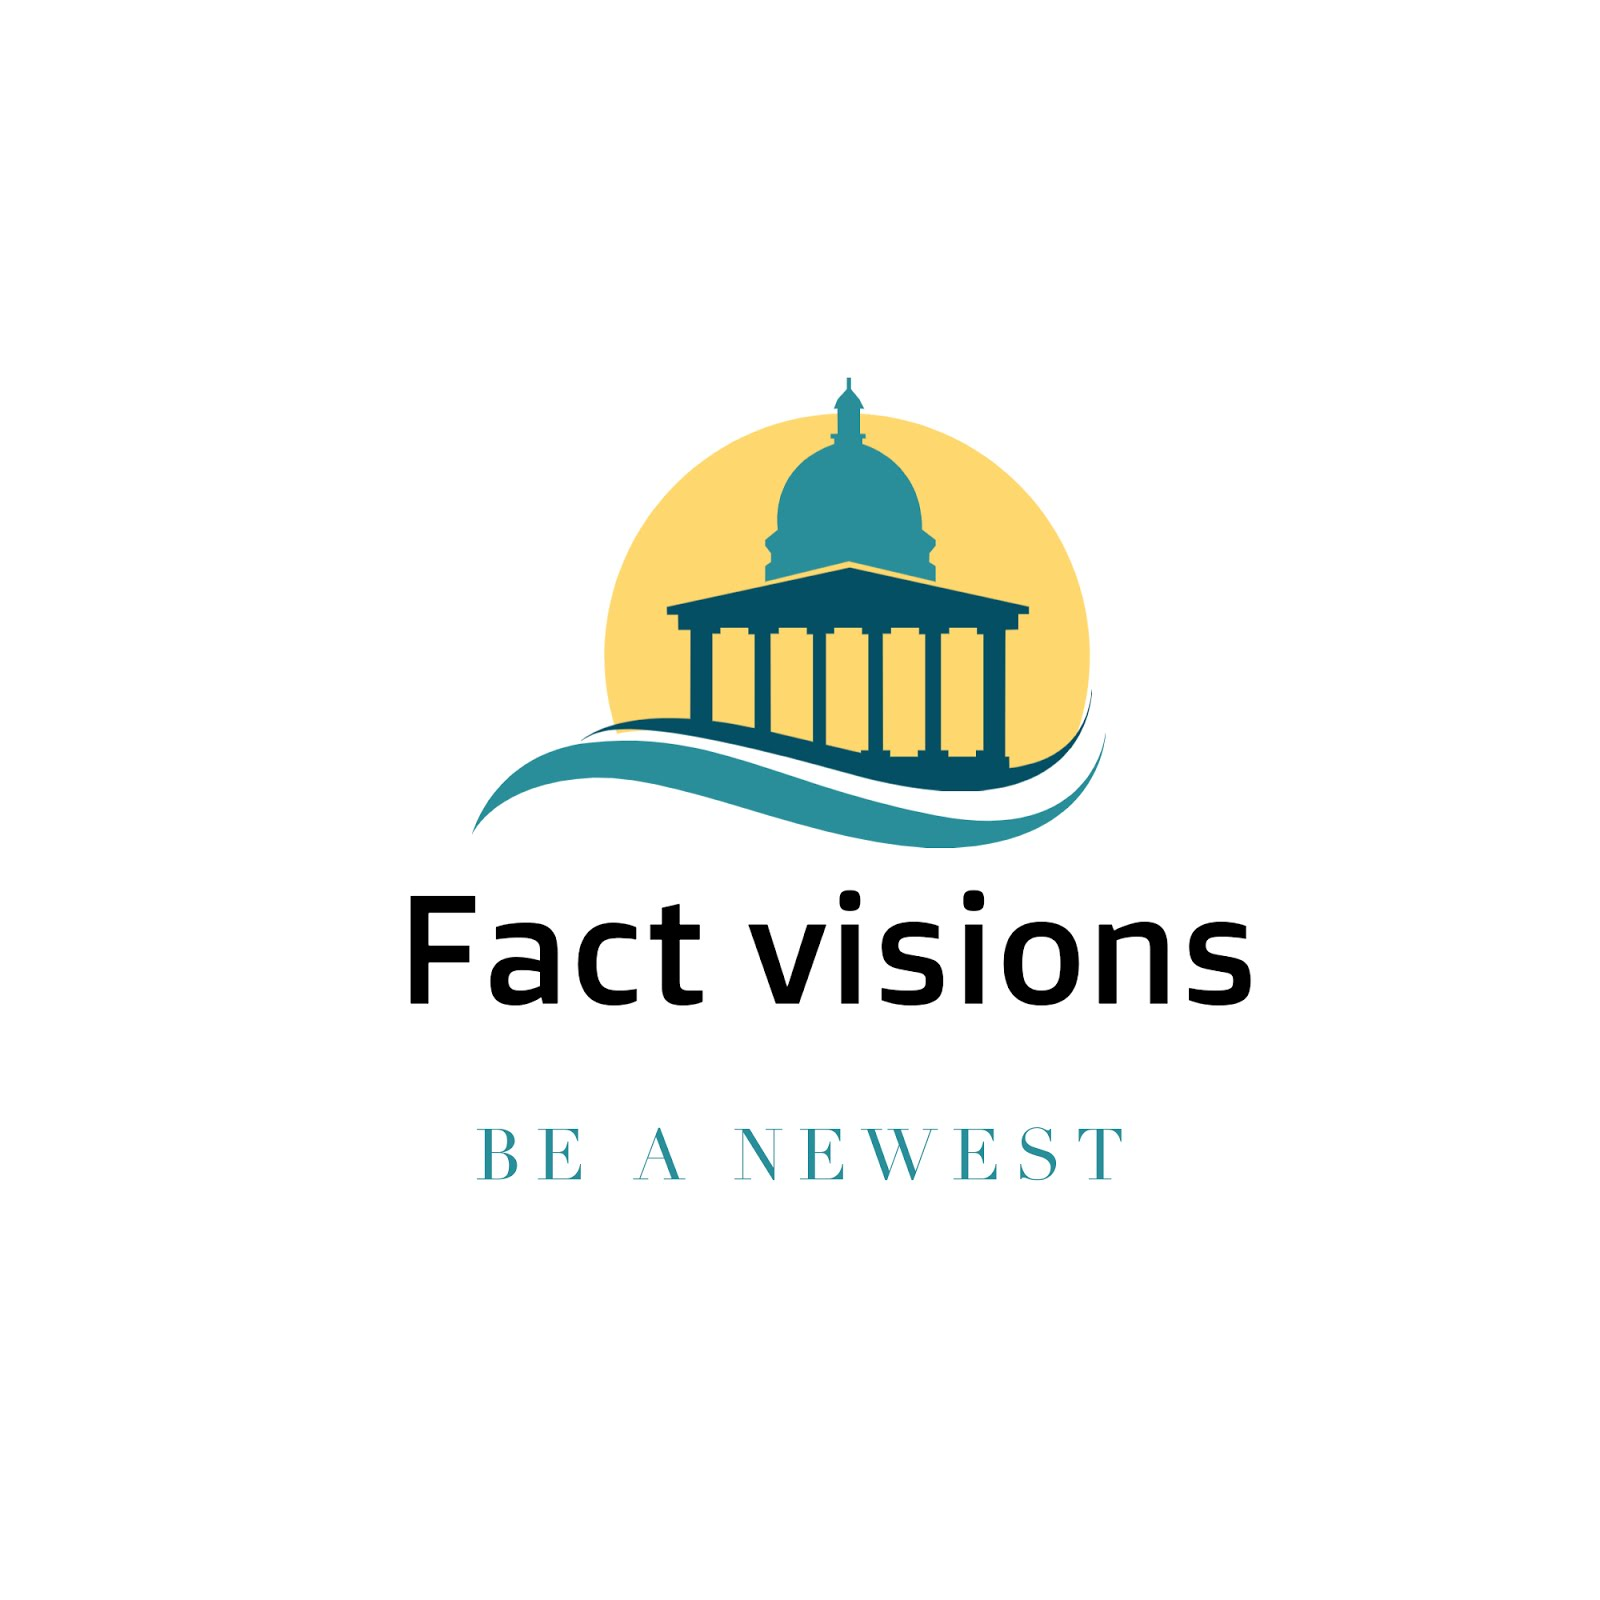 Fact visions